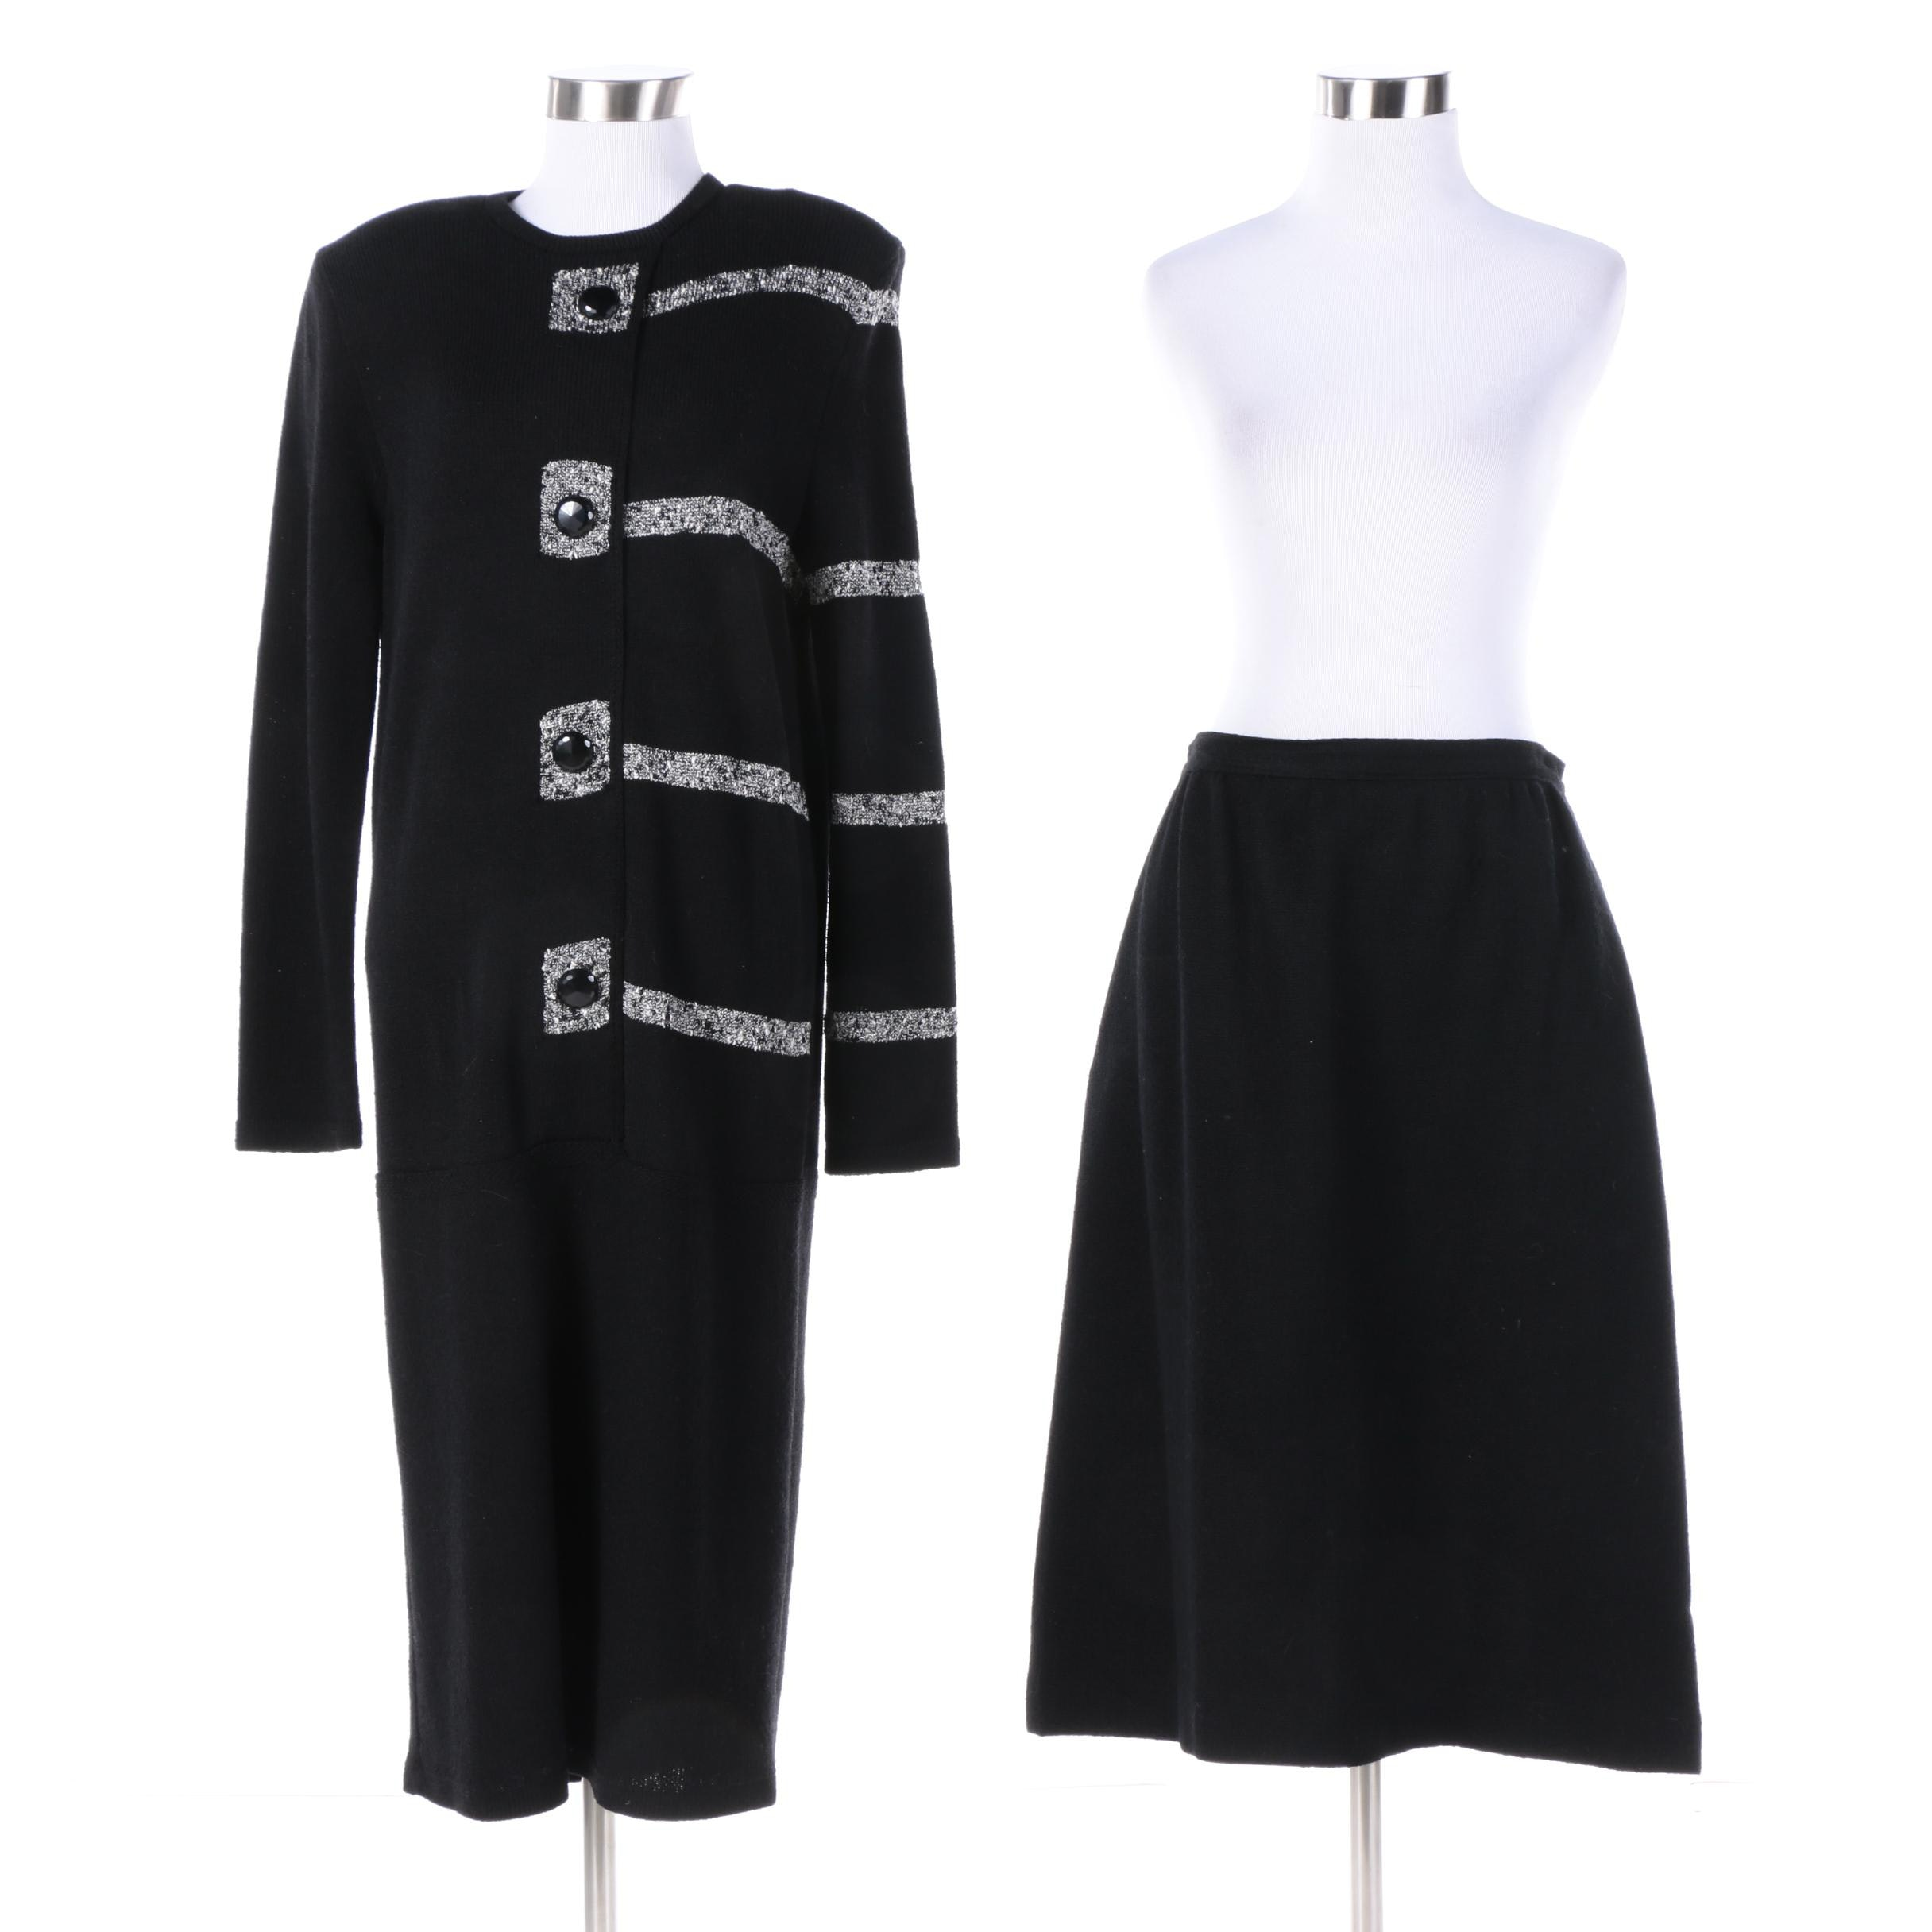 Women's Vintage Knit Dress and Wool Skirt Including Mike Korwin